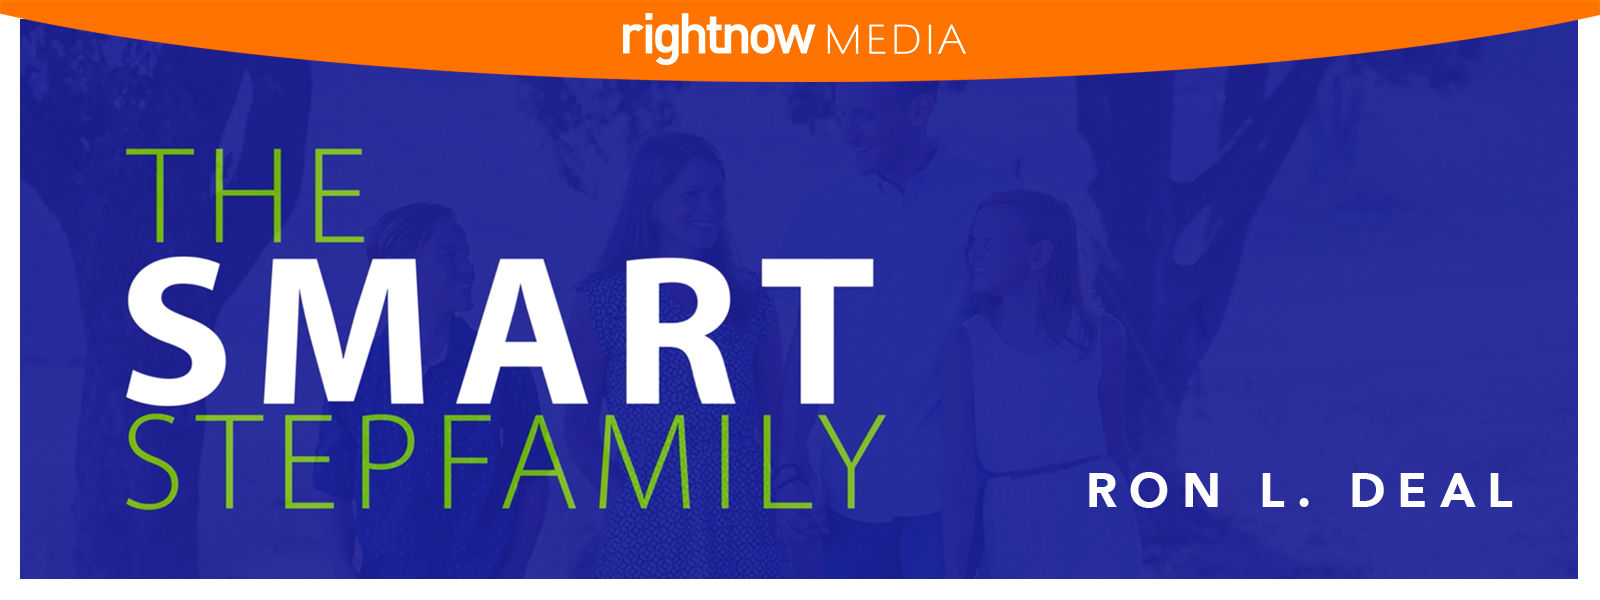 The Smart Stepfamily 2019